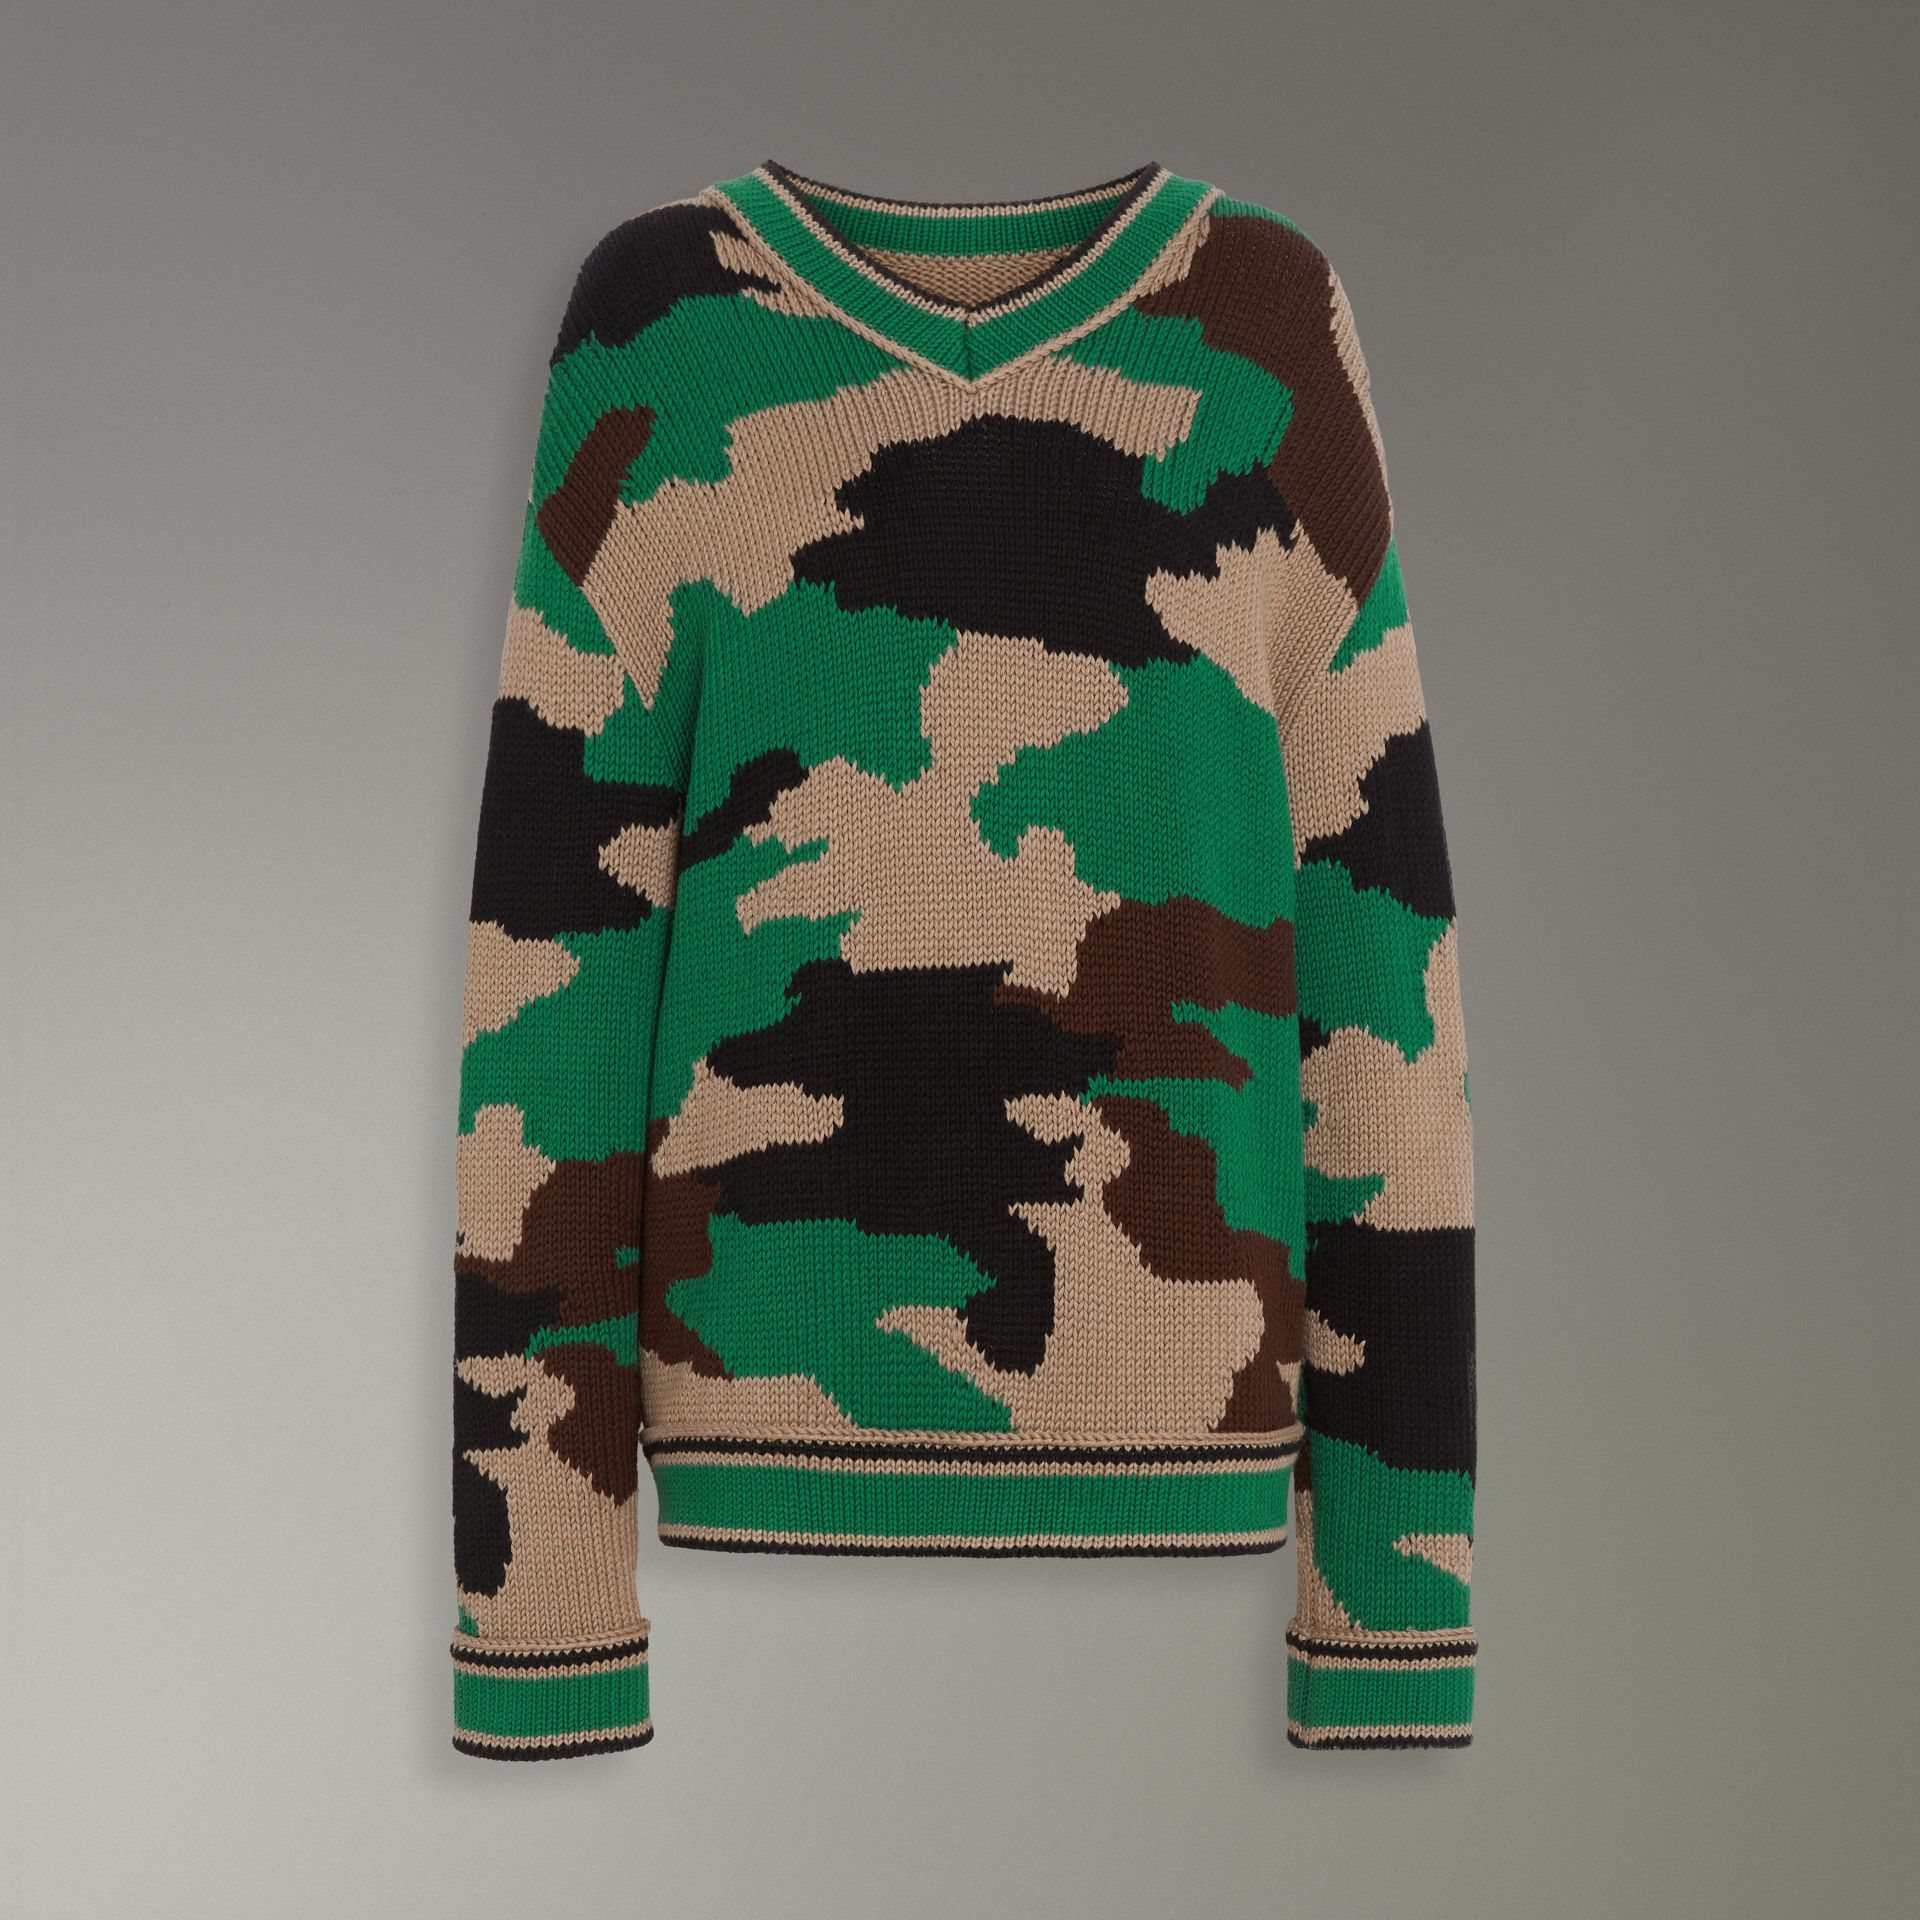 Camouflage Intarsia Cotton V-neck Sweater in Military Khaki - Women | Burberry Canada - gallery image 3